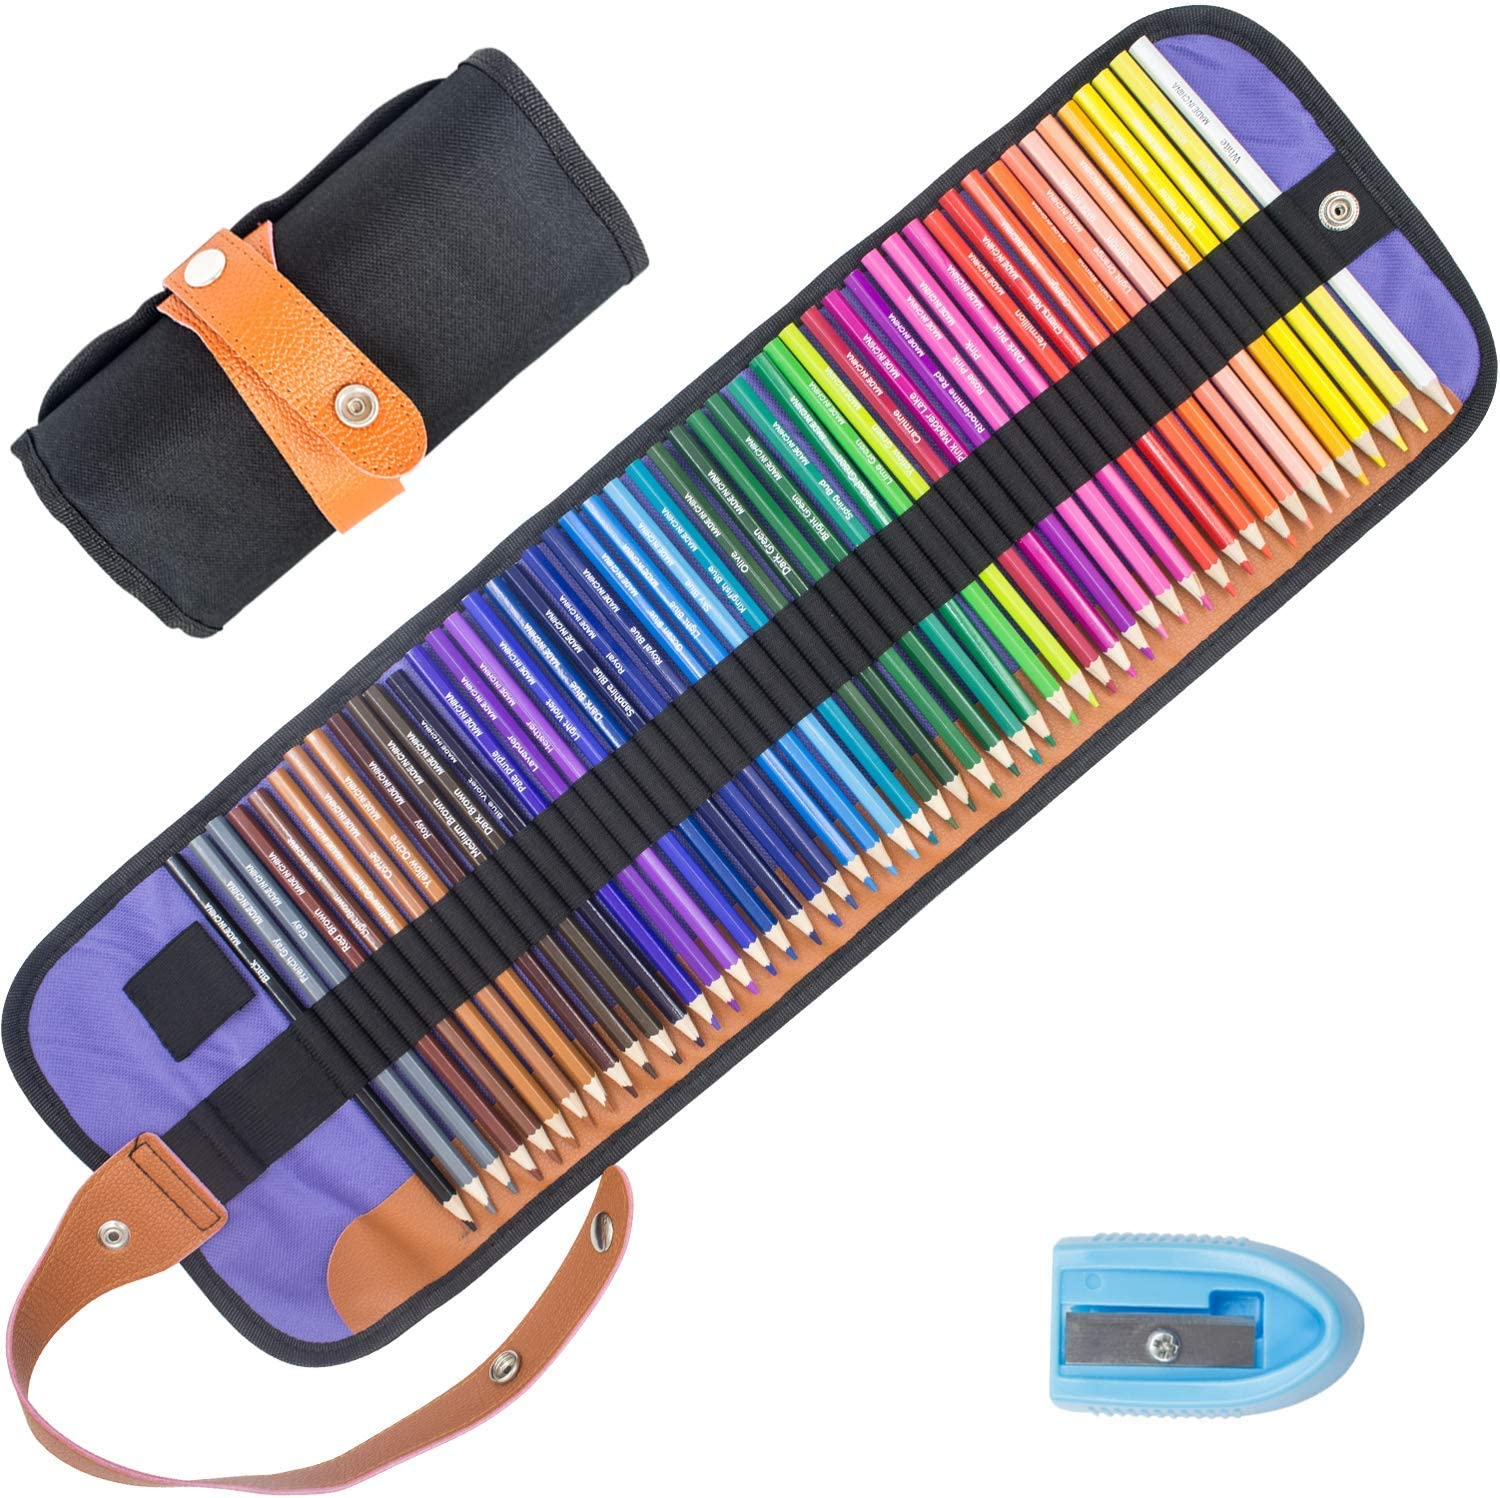 Riyanon Color Pencils Colored Pencil Set of 50 Colors Sketching Drawing Kit with Portable Roll-Up Pouch Canvas Bag Case Included Sharpener Ideal for Adults and Kids (50 Colors)